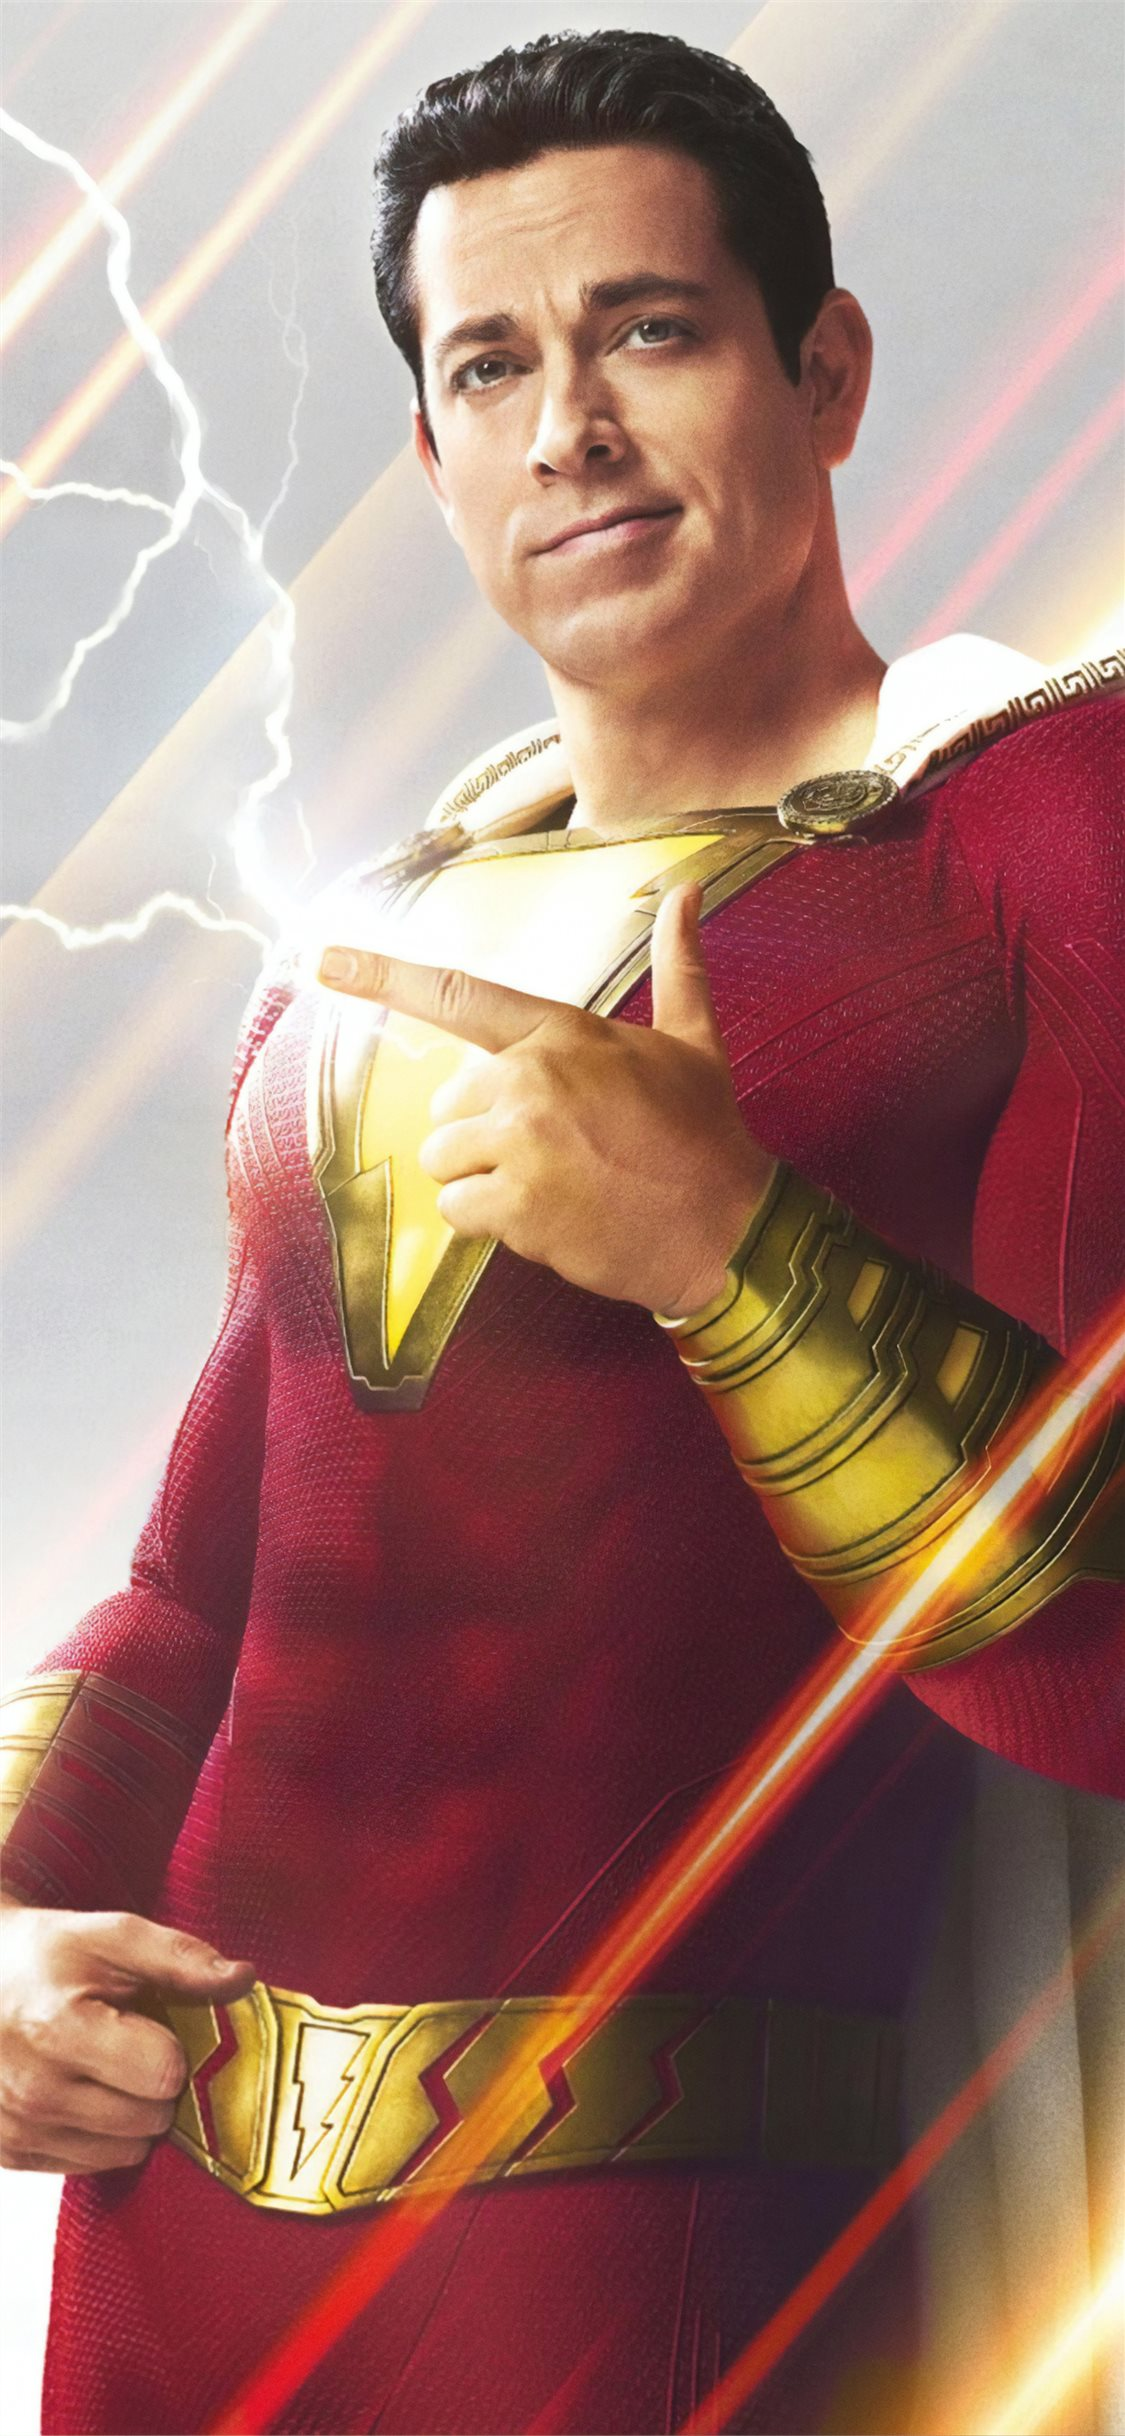 Shazam Movie 4k Poster Iphone X Wallpapers Free Download